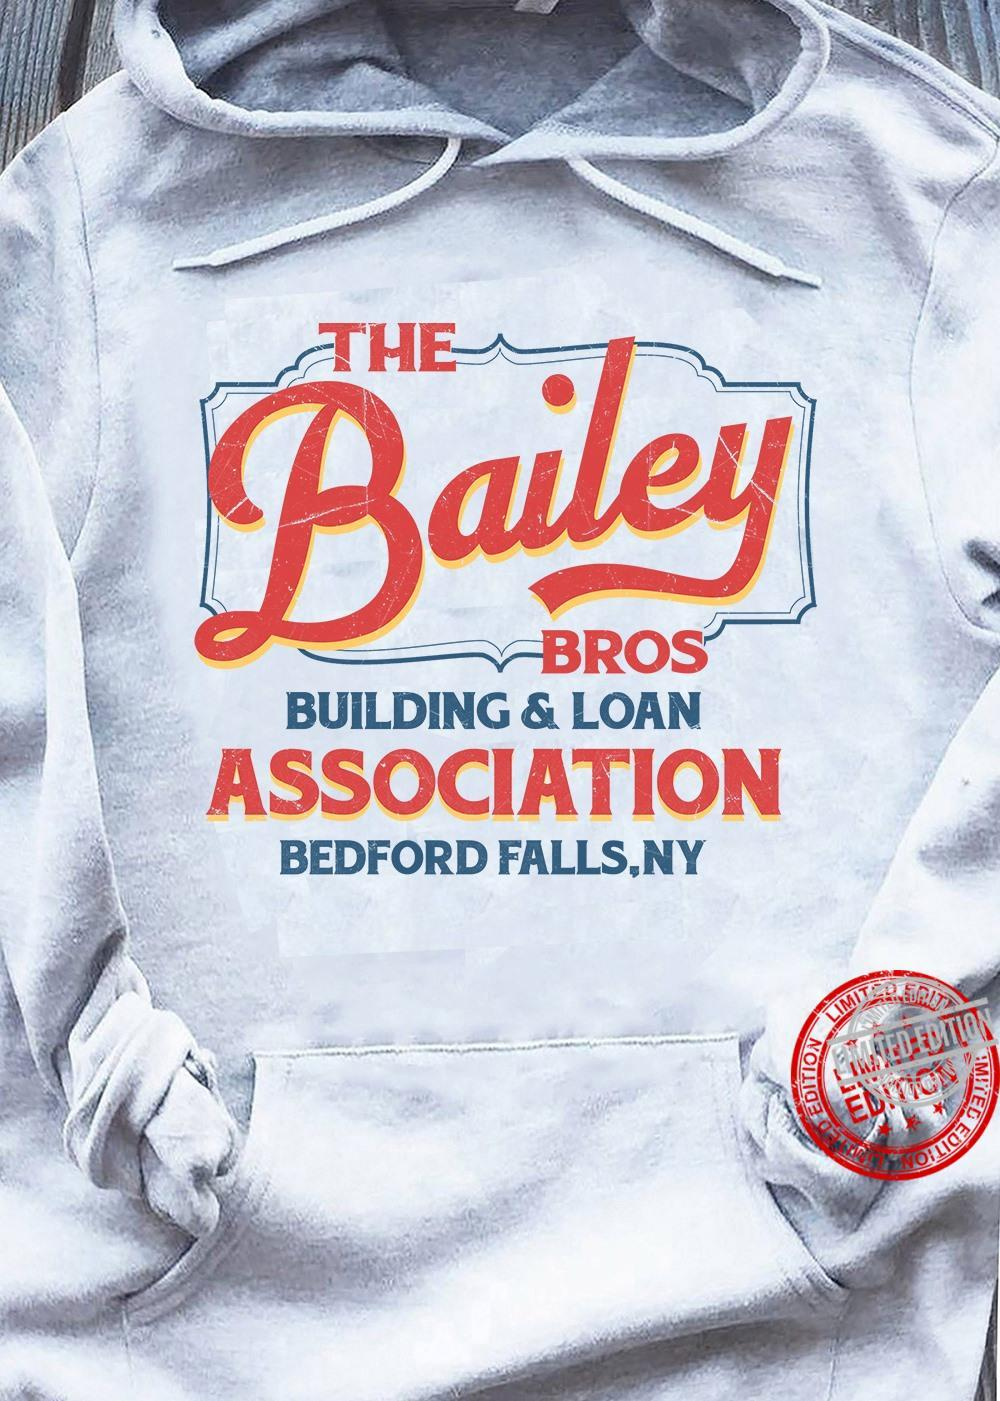 THe Bailey Bros Building Loan Association Bedford Falls Ny Shirt